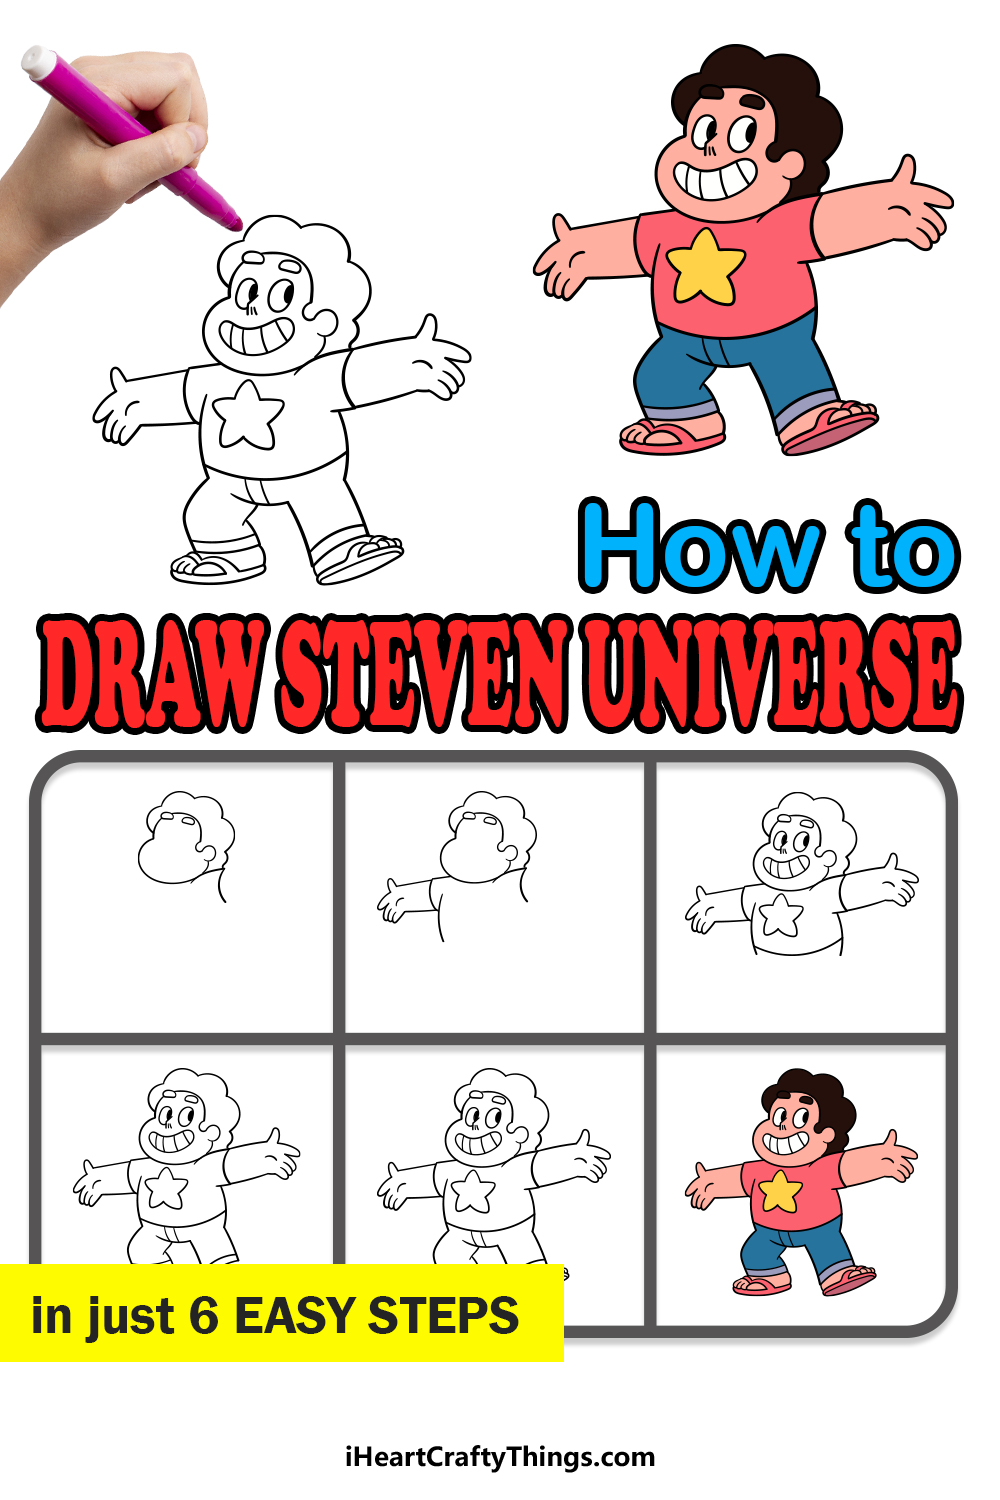 how to draw steven universe in 6 easy steps